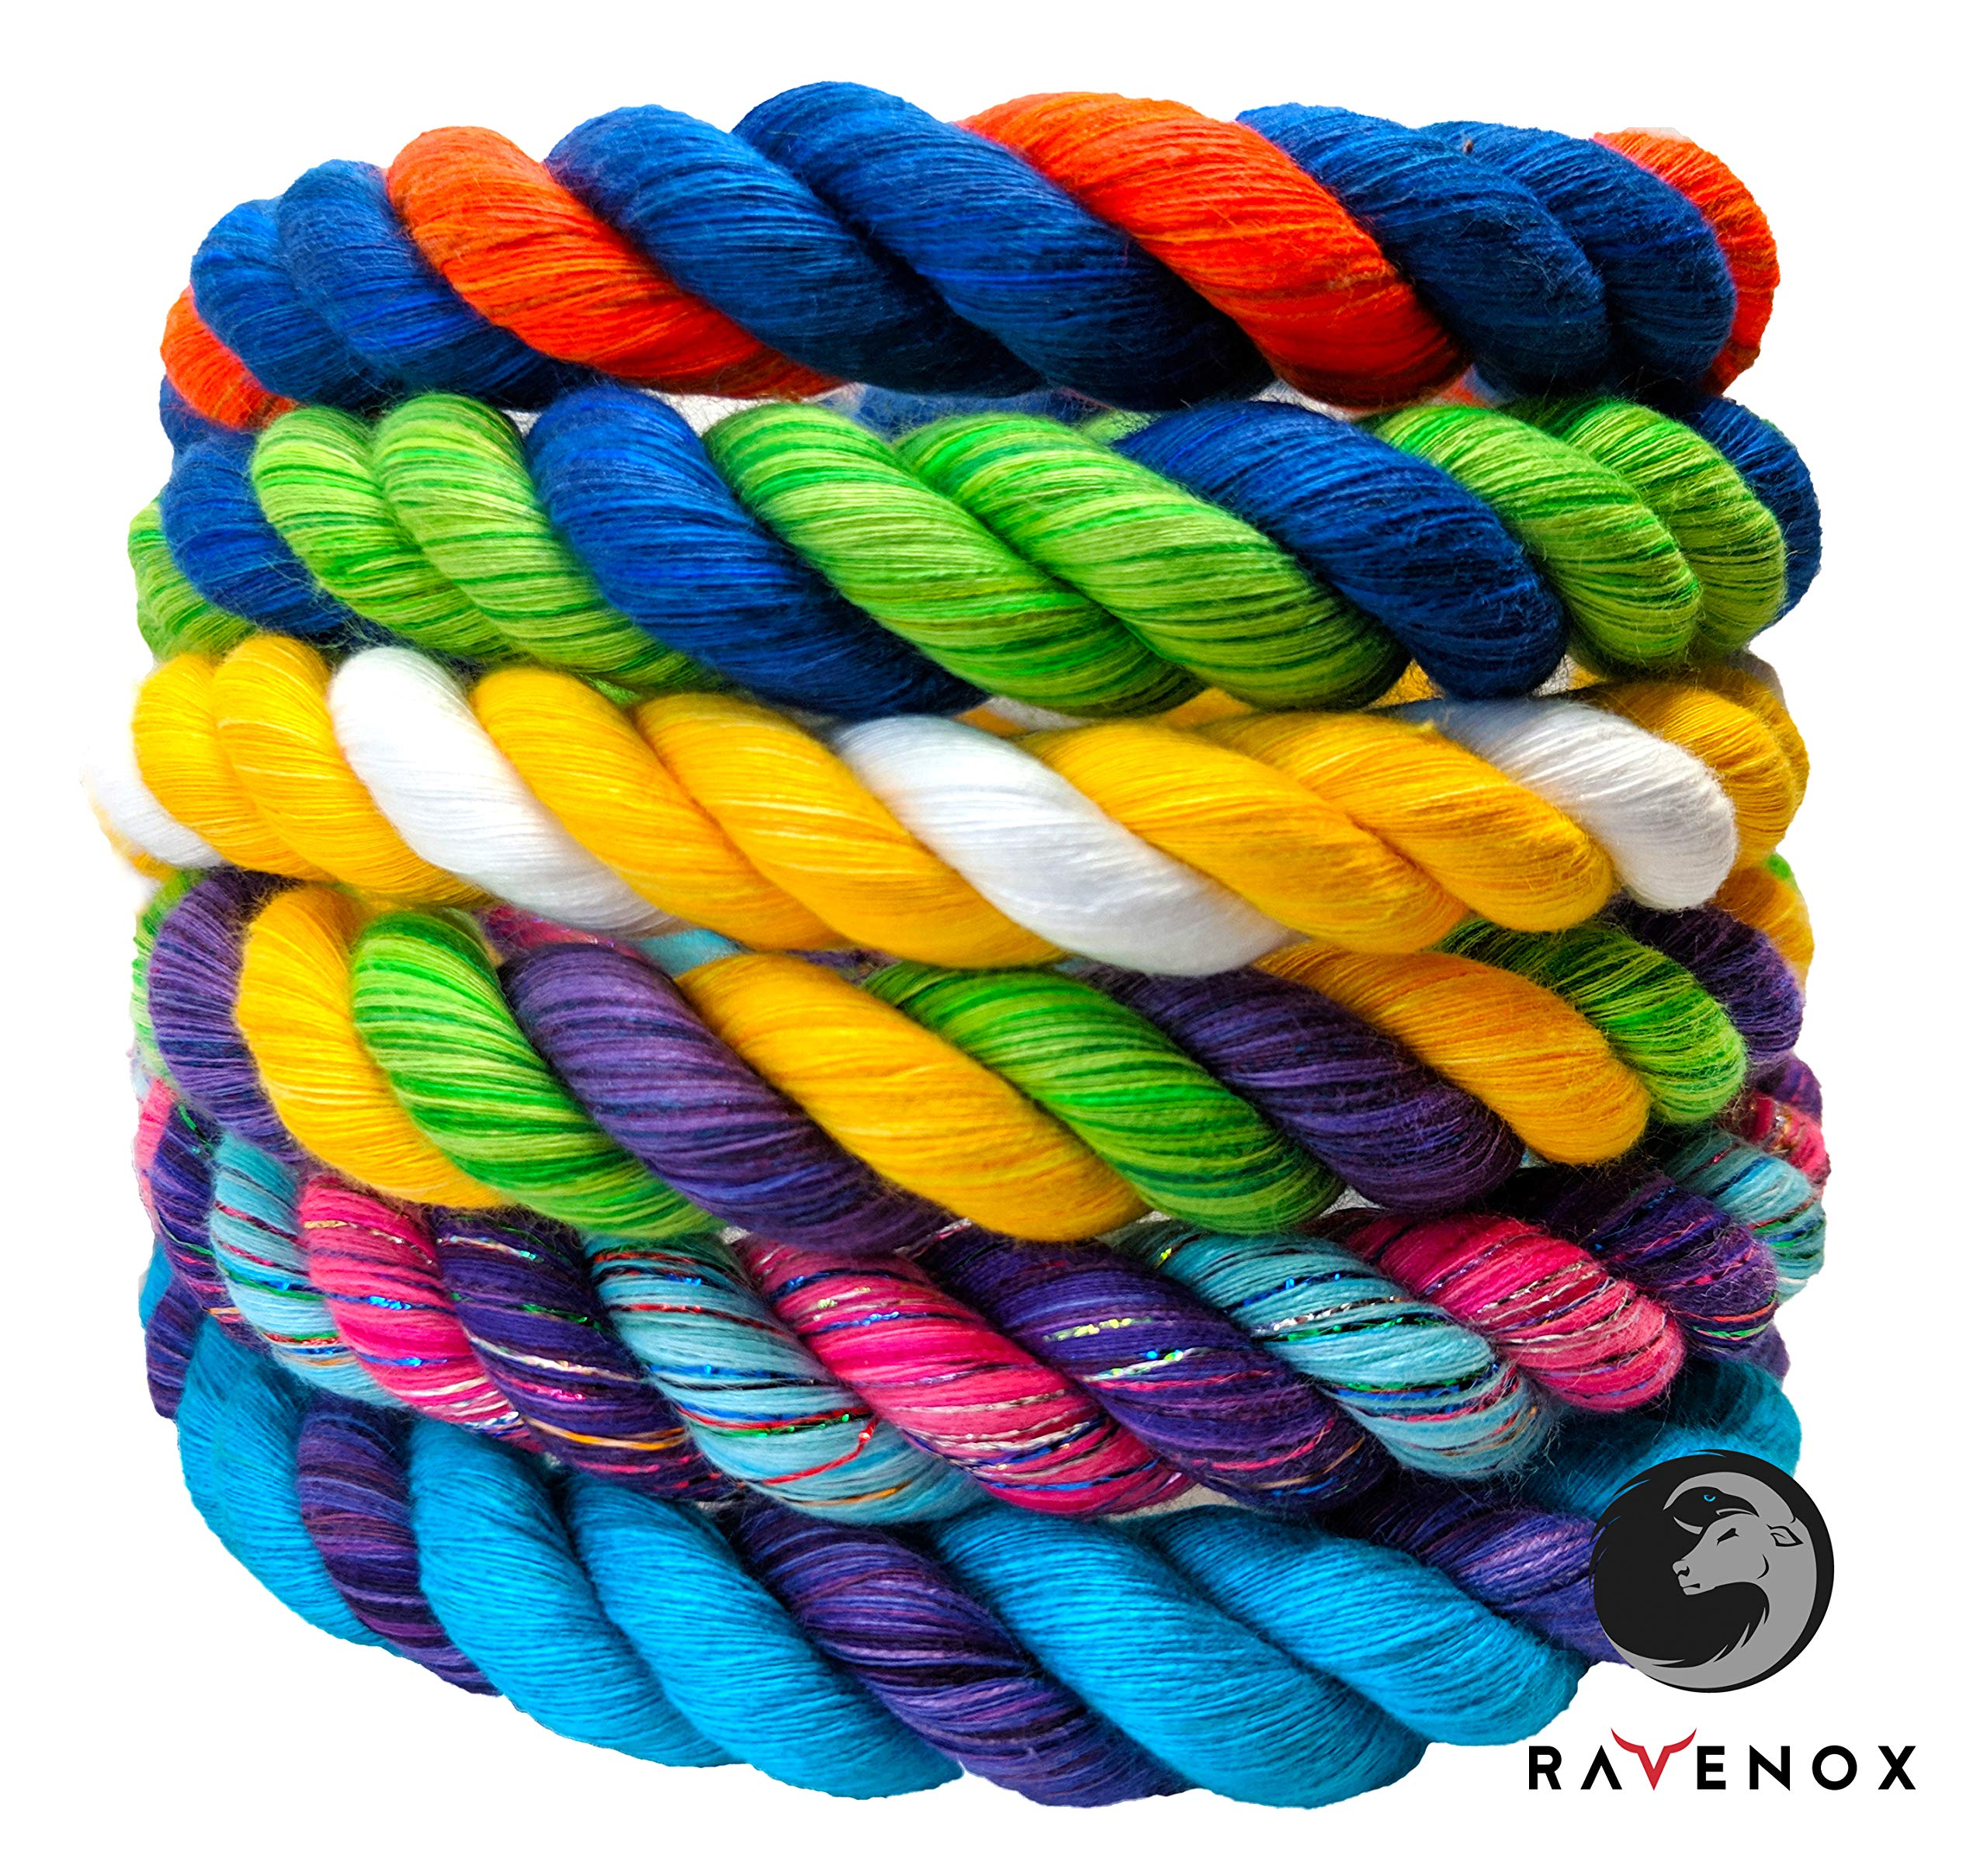 Ravenox Colorful Twisted Cotton Rope | (White)(1 Inch x 250 Feet) | Made in The USA | Custom Color Cordage for Sports, Décor, Pet Toys, Crafts, Macramé & General Use | Rope by The Foot & Diameter